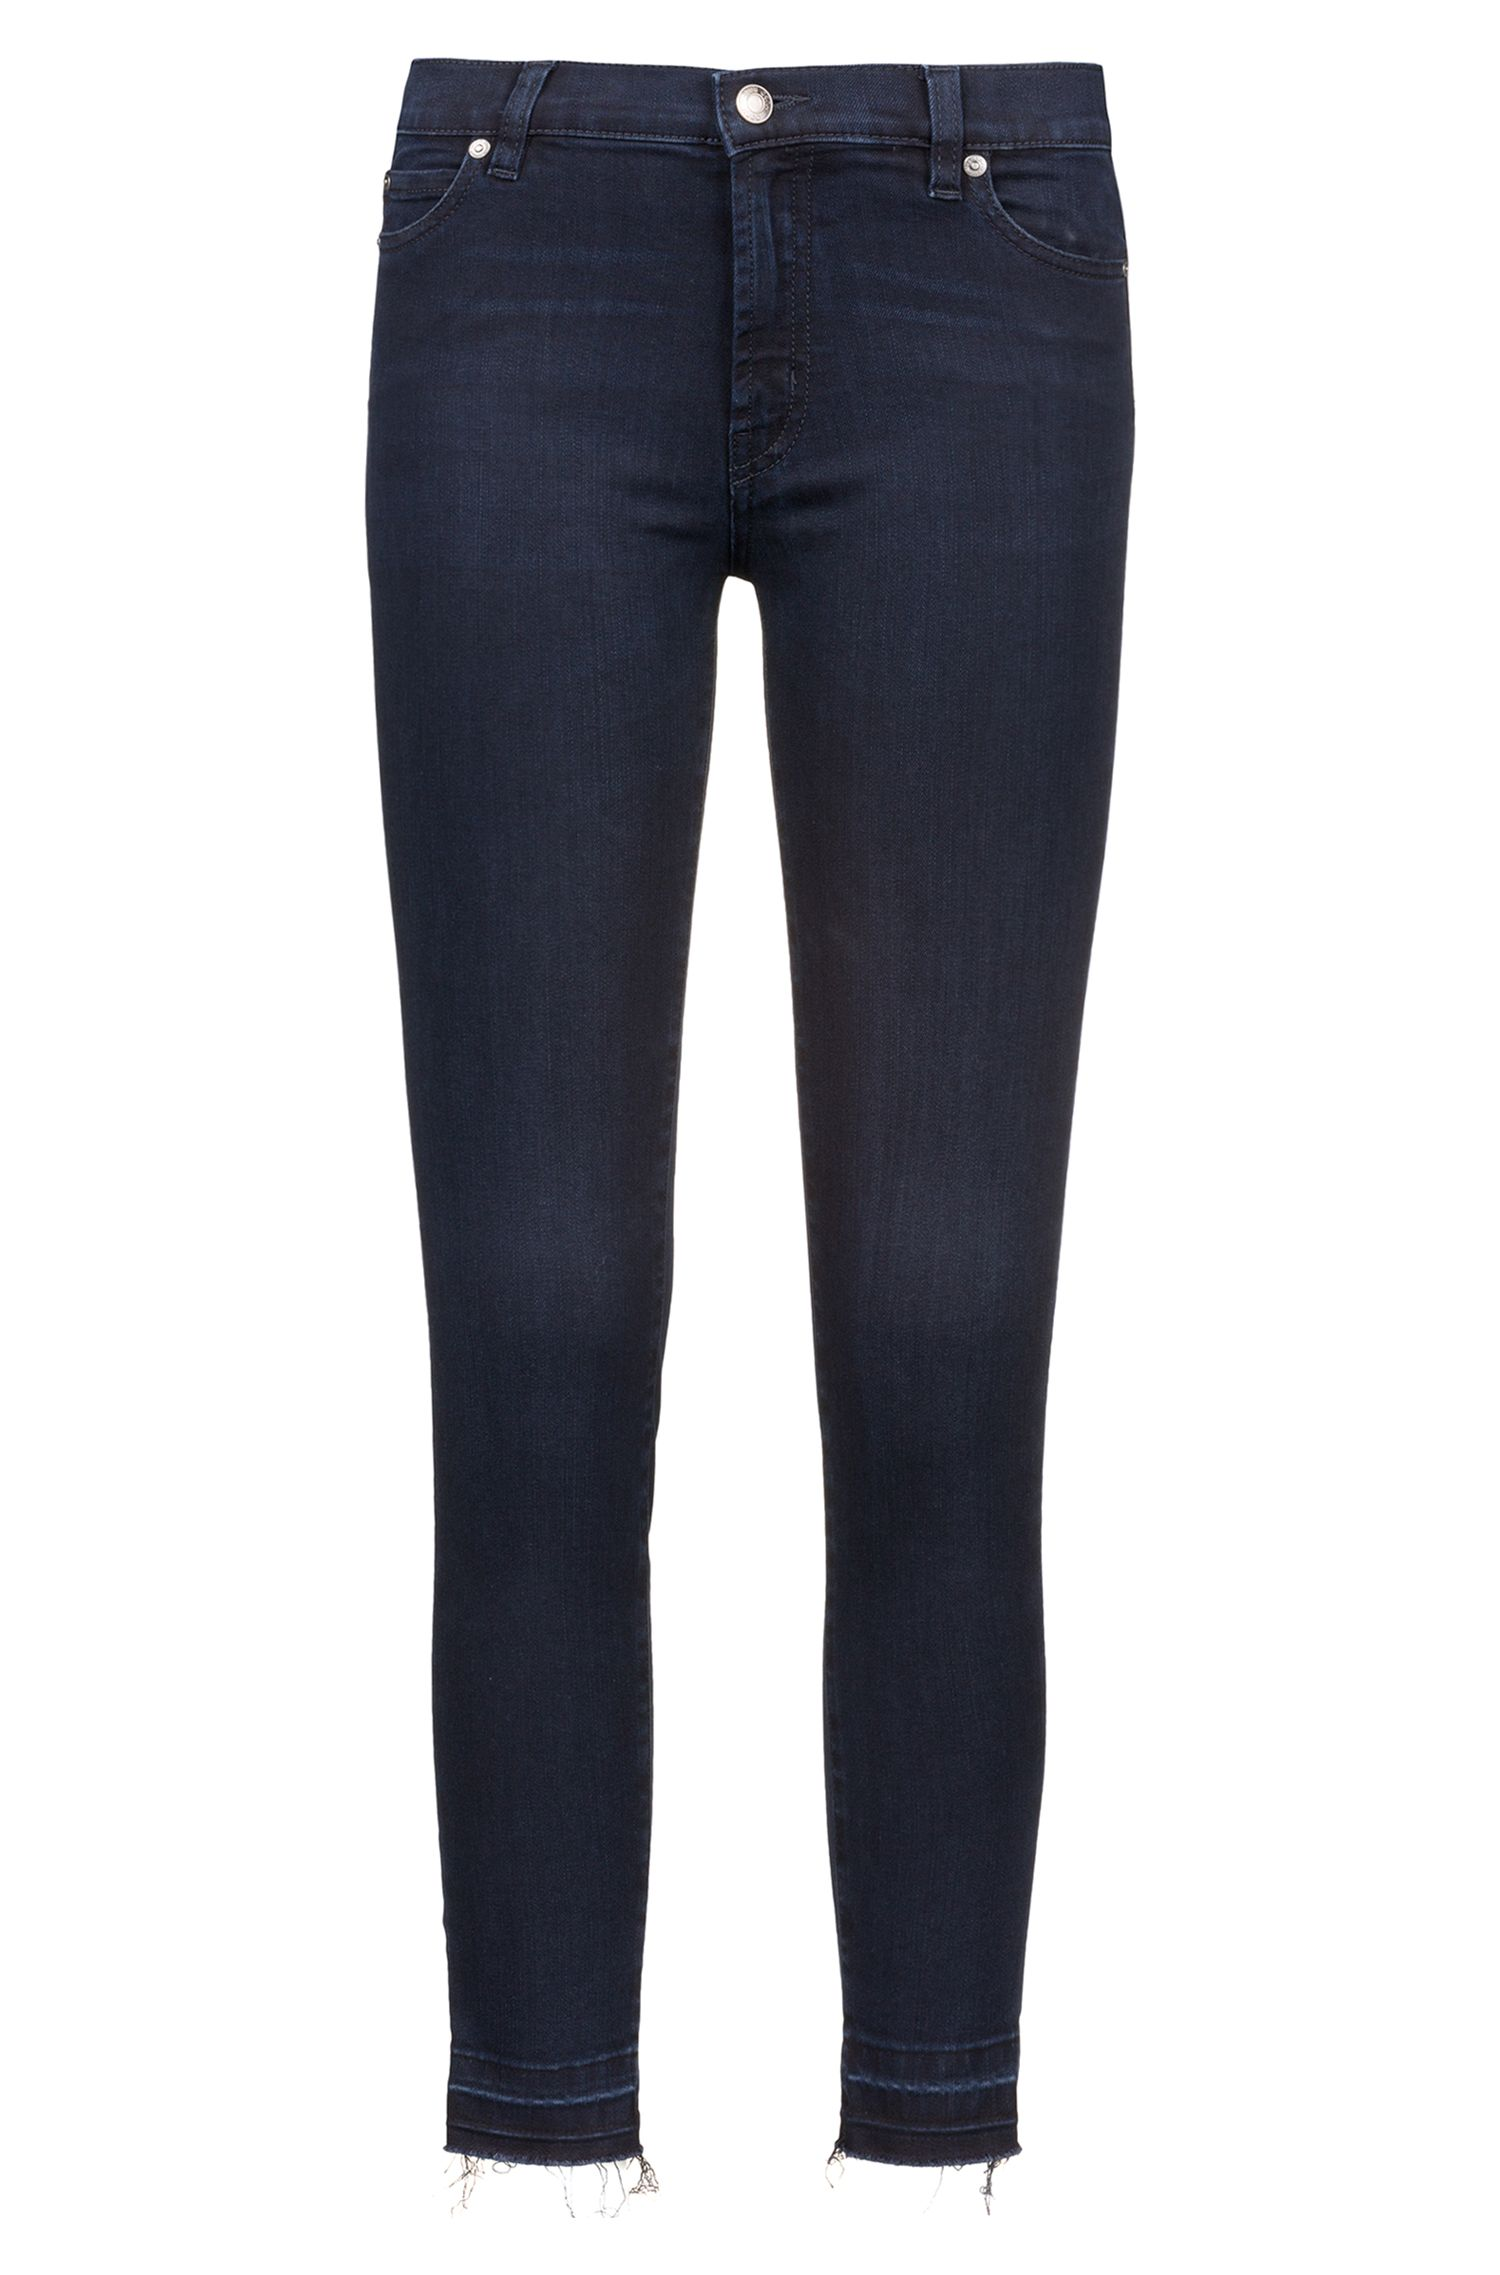 Jeans extra slim fit in denim elasticizzato con orli aperti